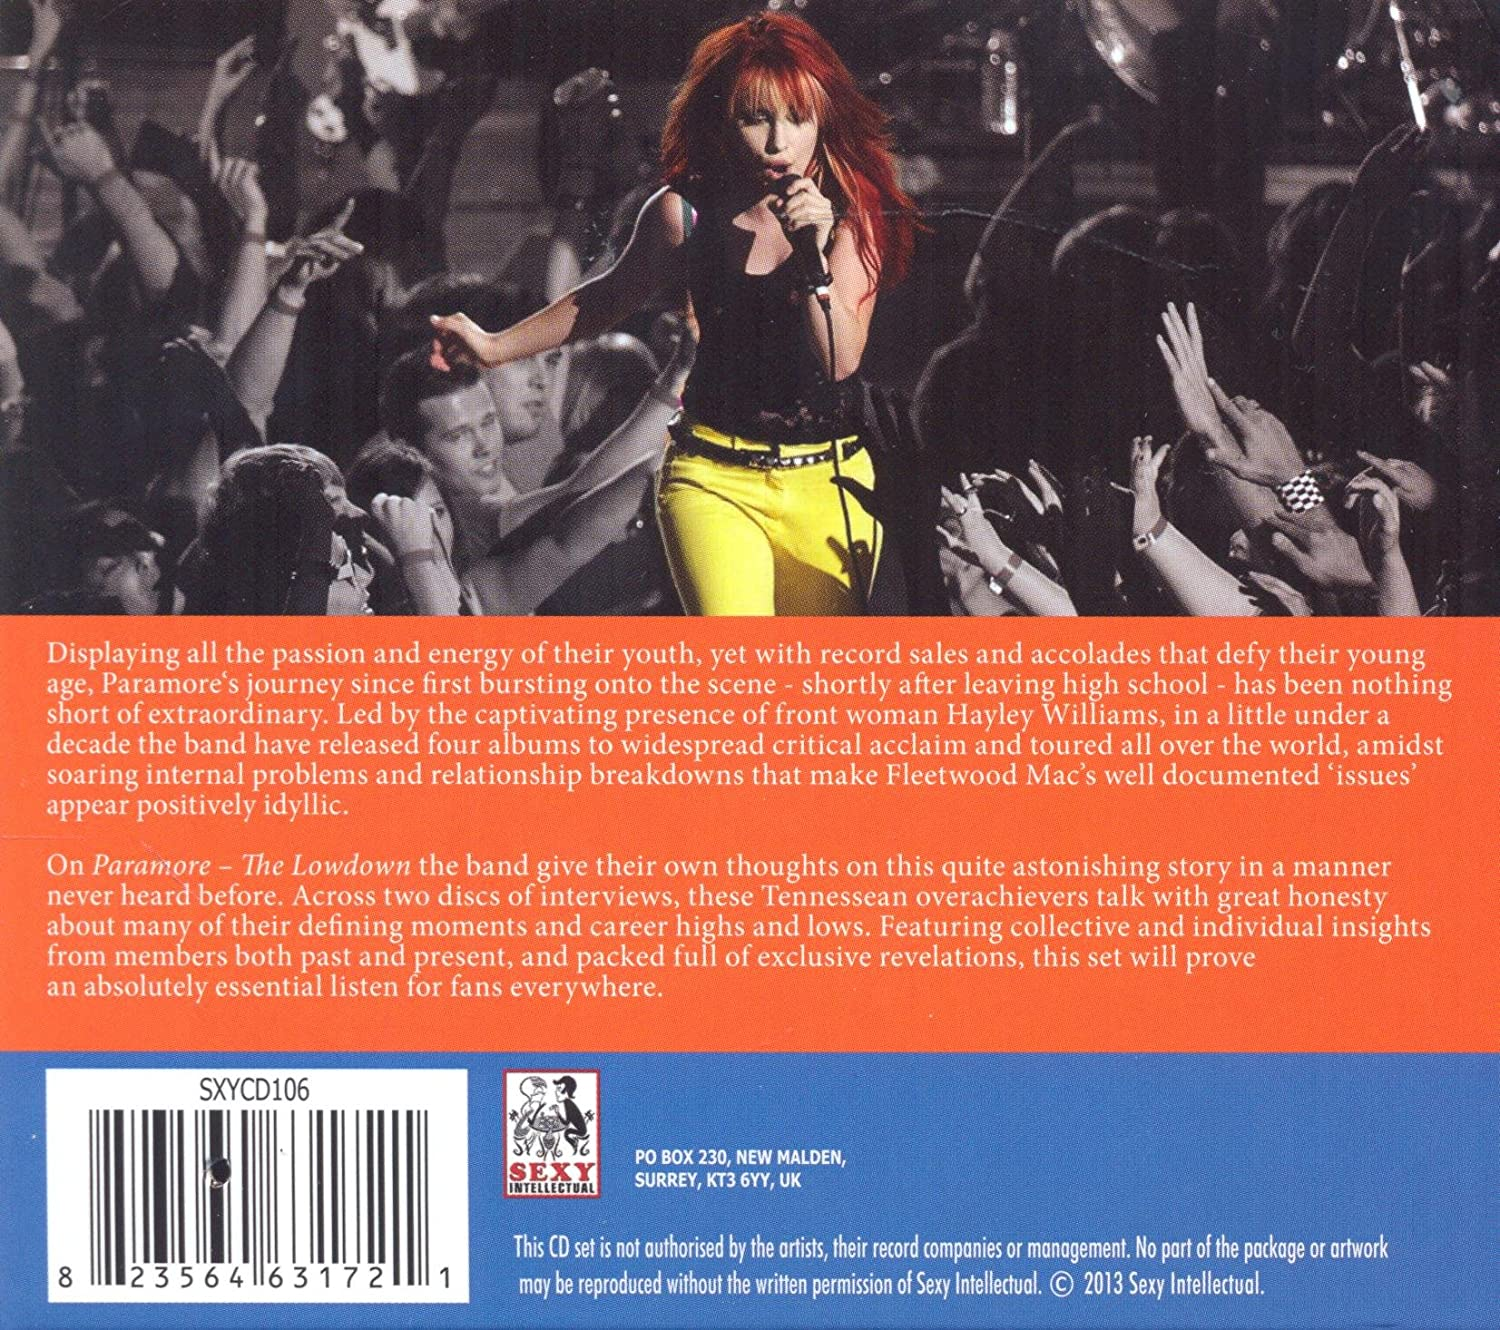 My World of Rock music: Paramore - Discography